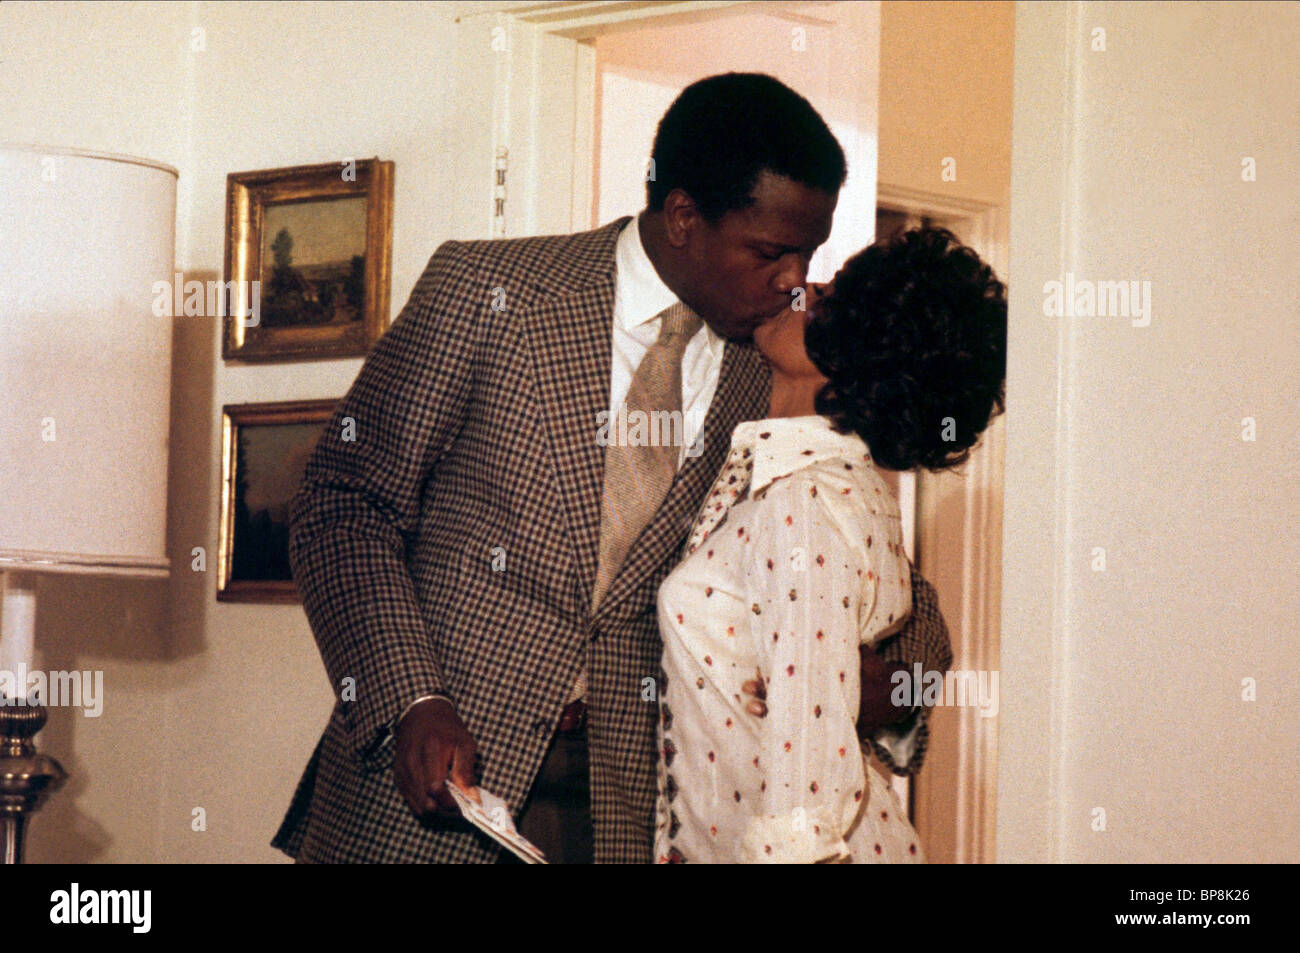 SIDNEY POITIER & BARBARA MCNAIR THE ORGANIZATION (1971) - Stock Image